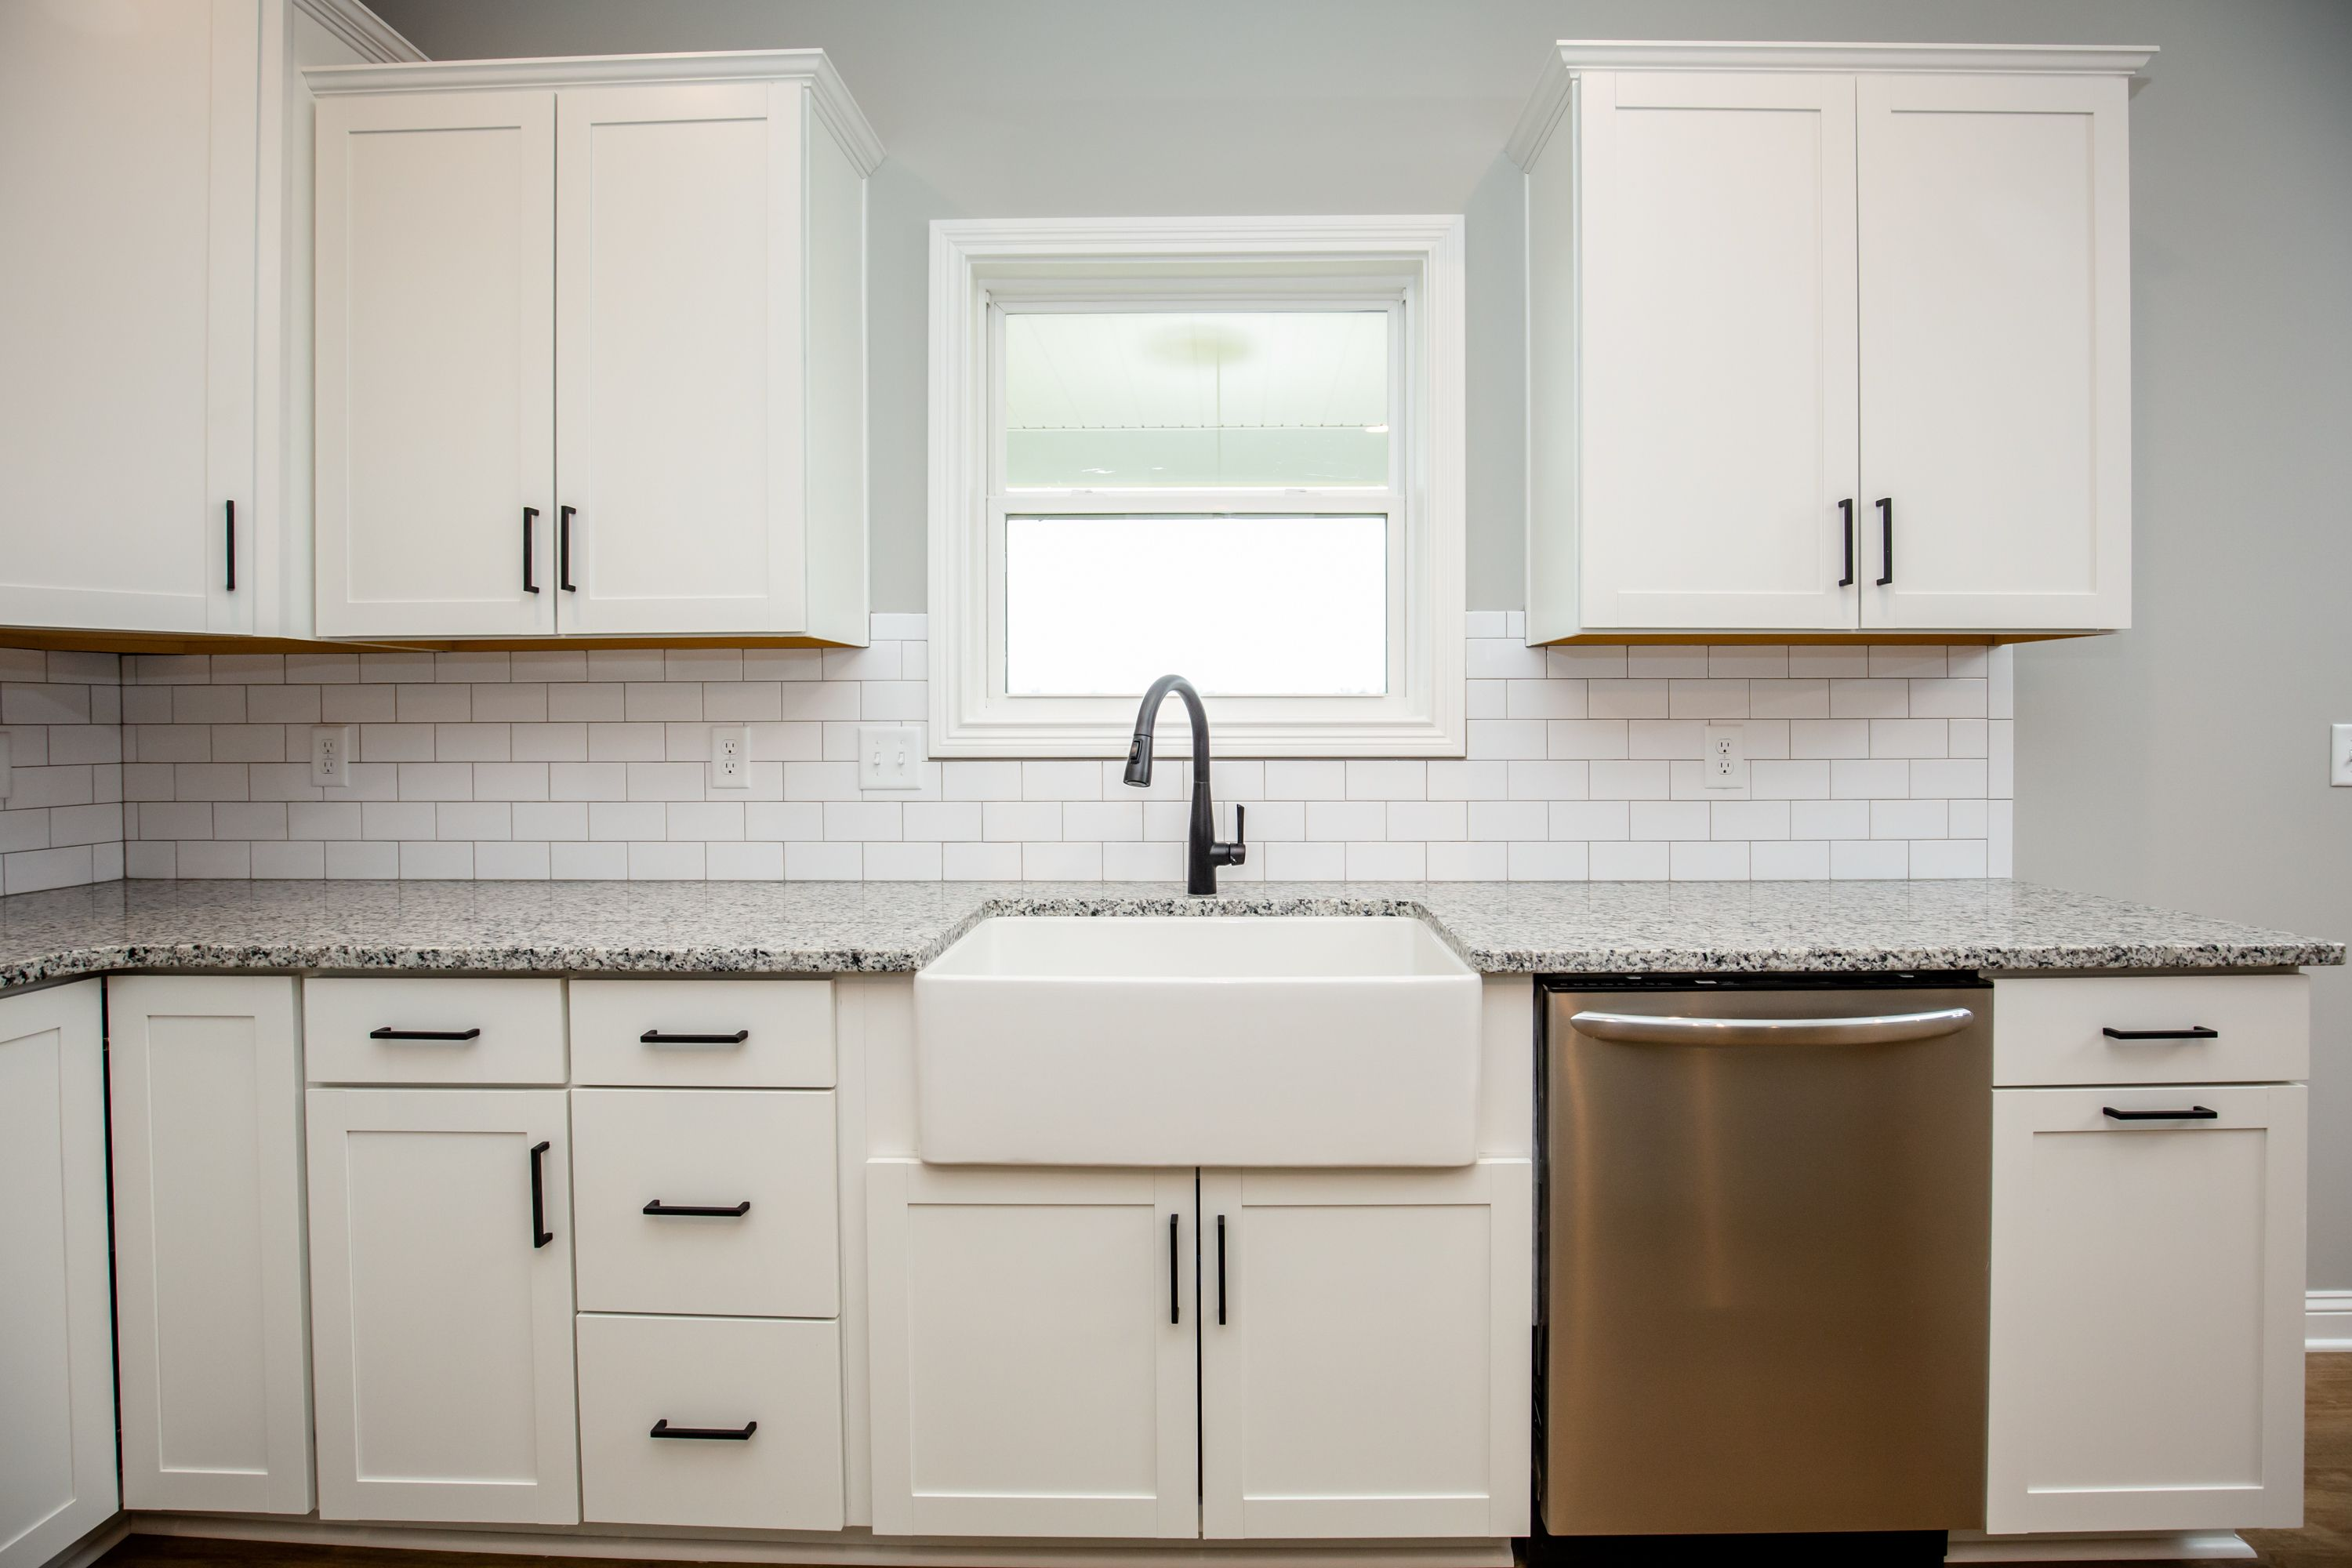 Kitchen featured in The Abigail - 3rd Car By James Monroe Homes in Lexington, KY